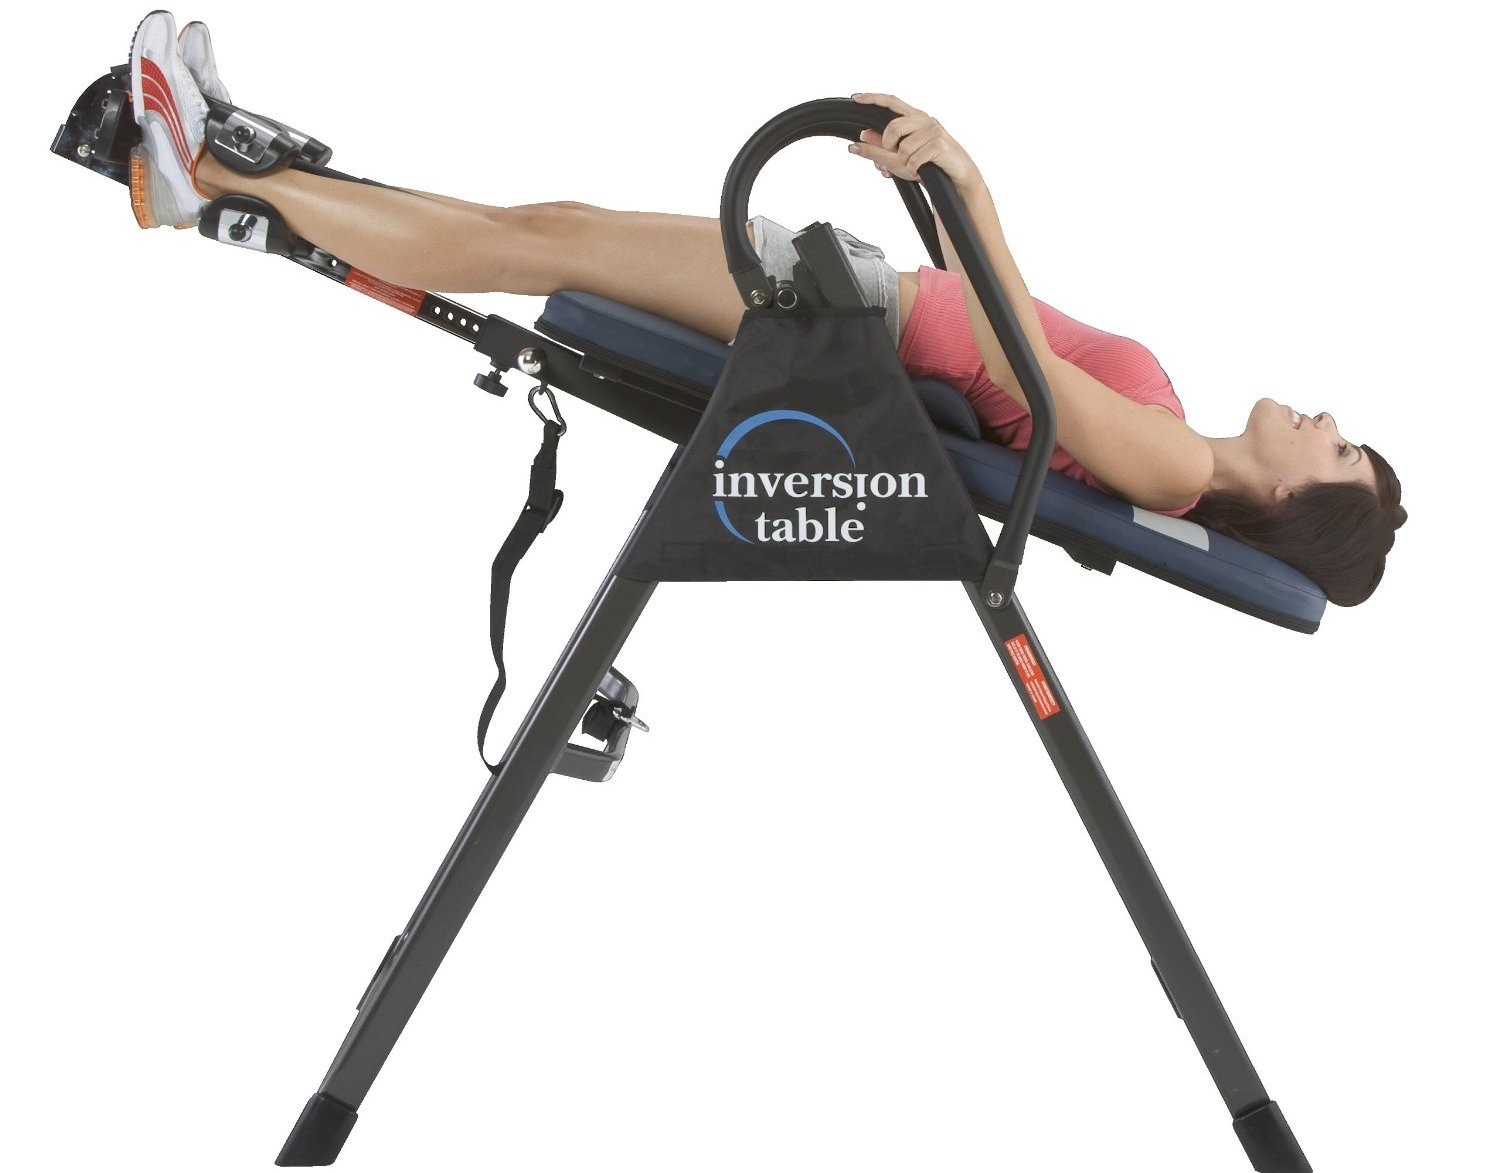 Top 5 Best Inversion Tables For Back Pain Therapy